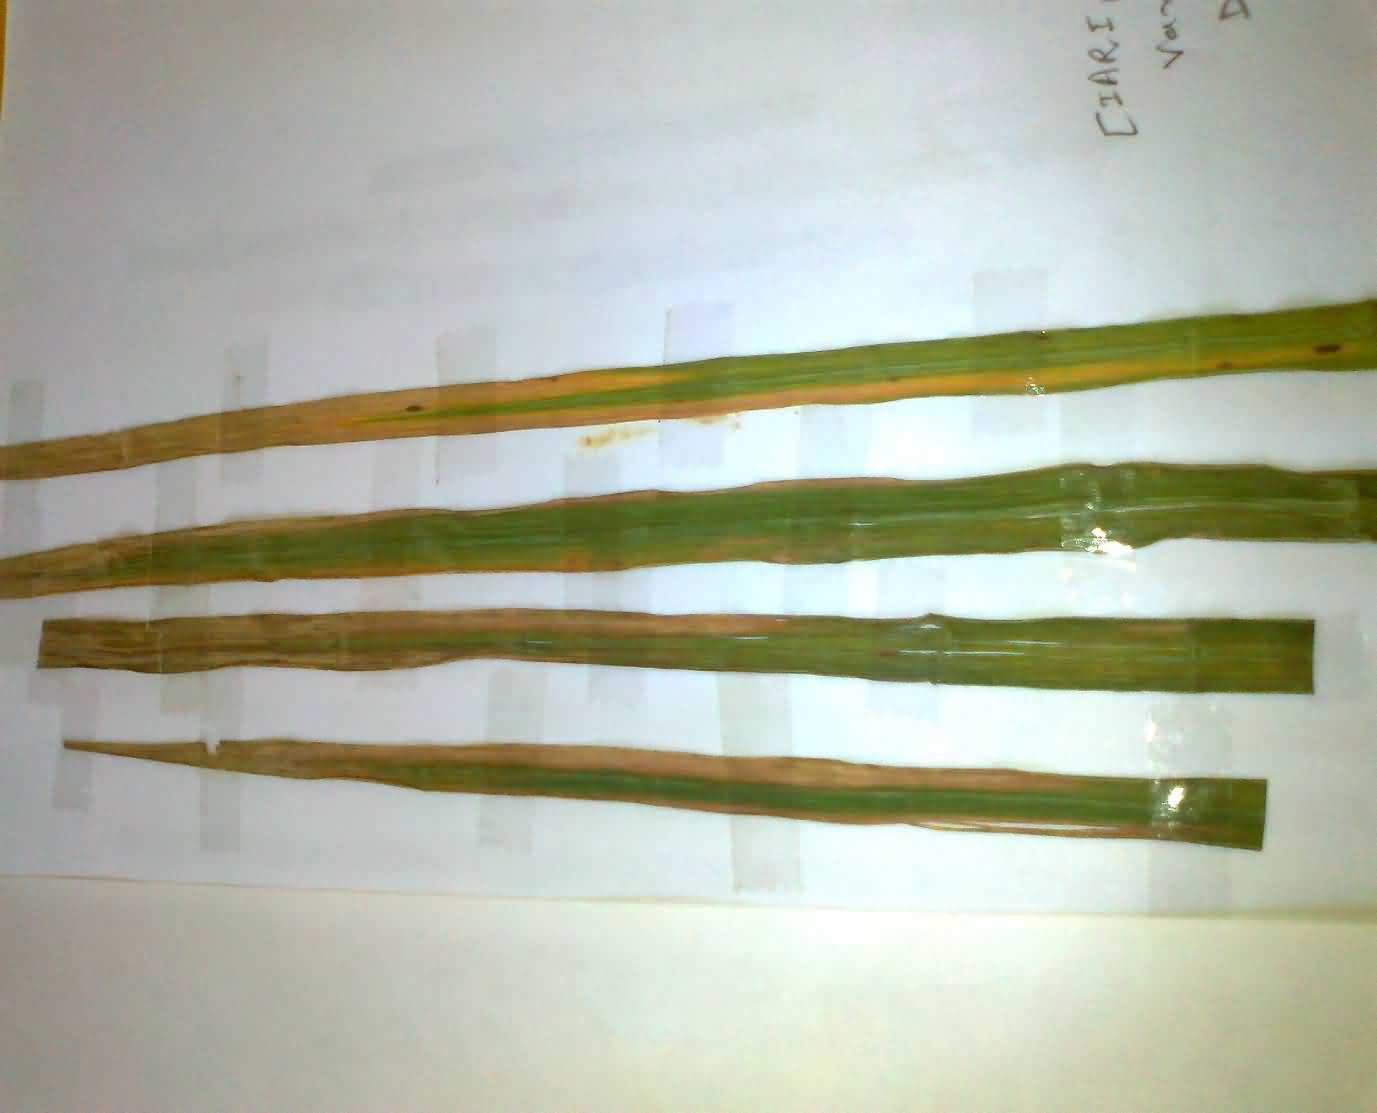 Bacterial Leaf Blight in paddy